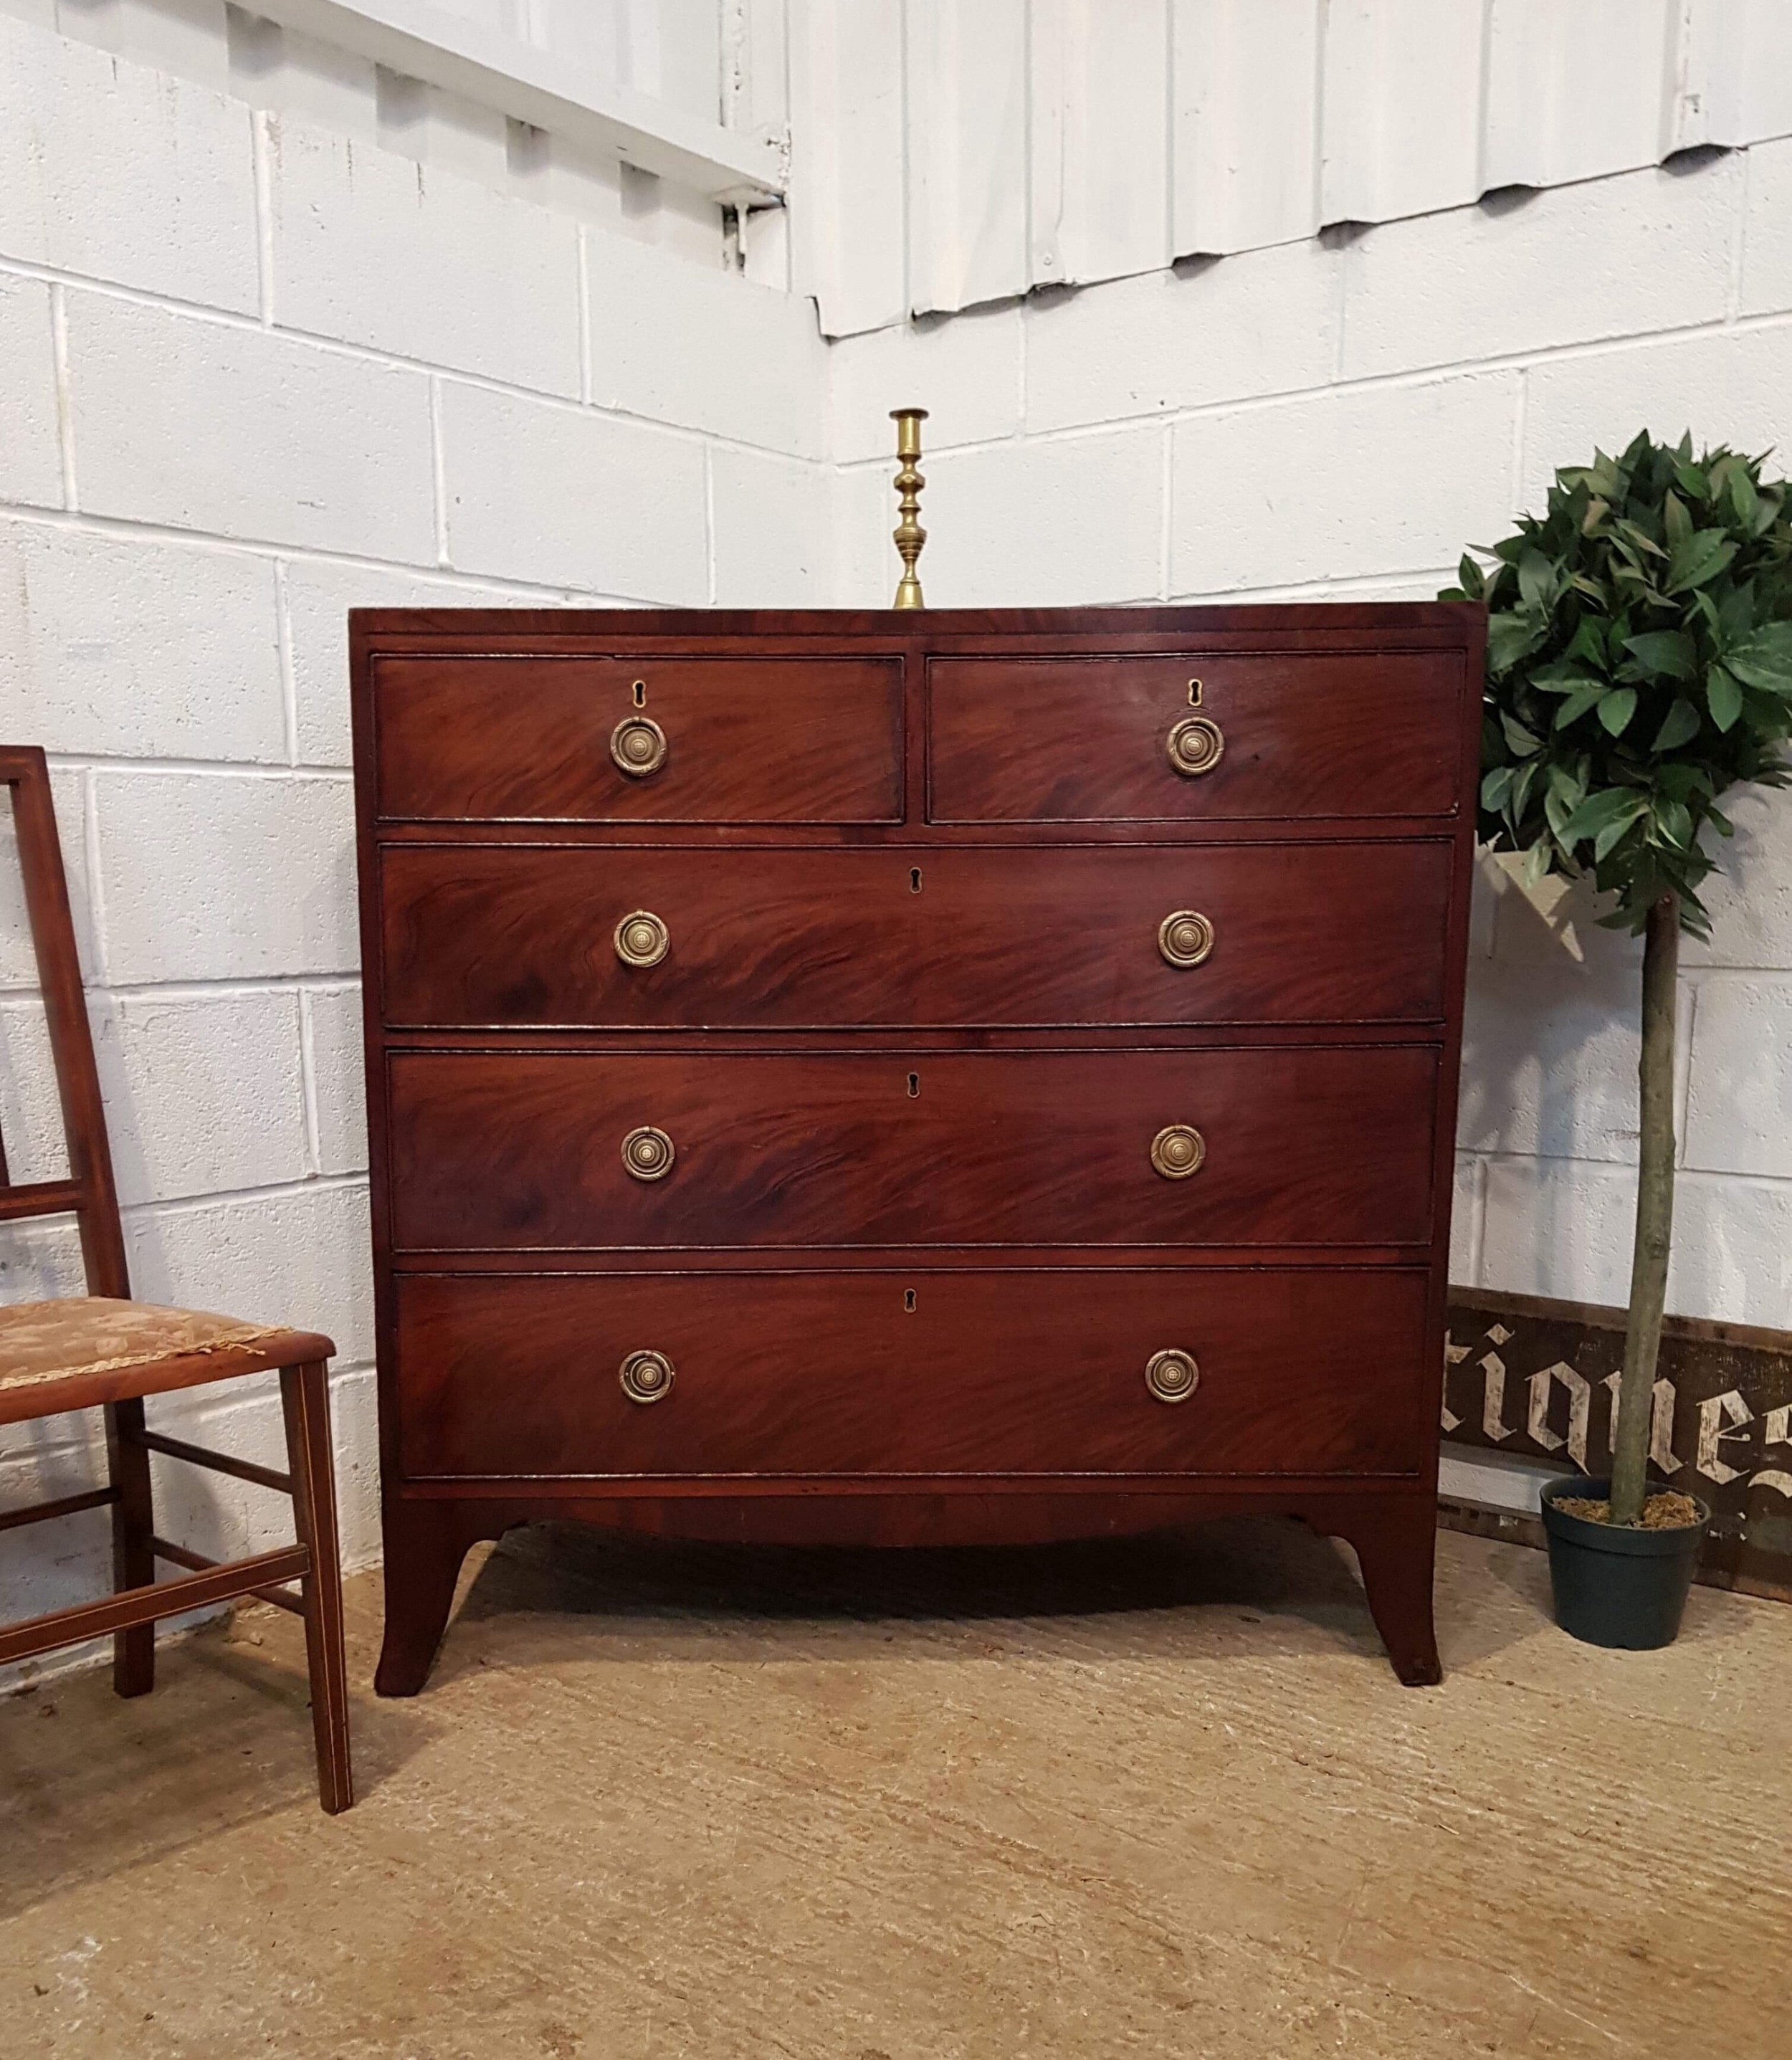 antique regency mahogany chest of drawers c1820